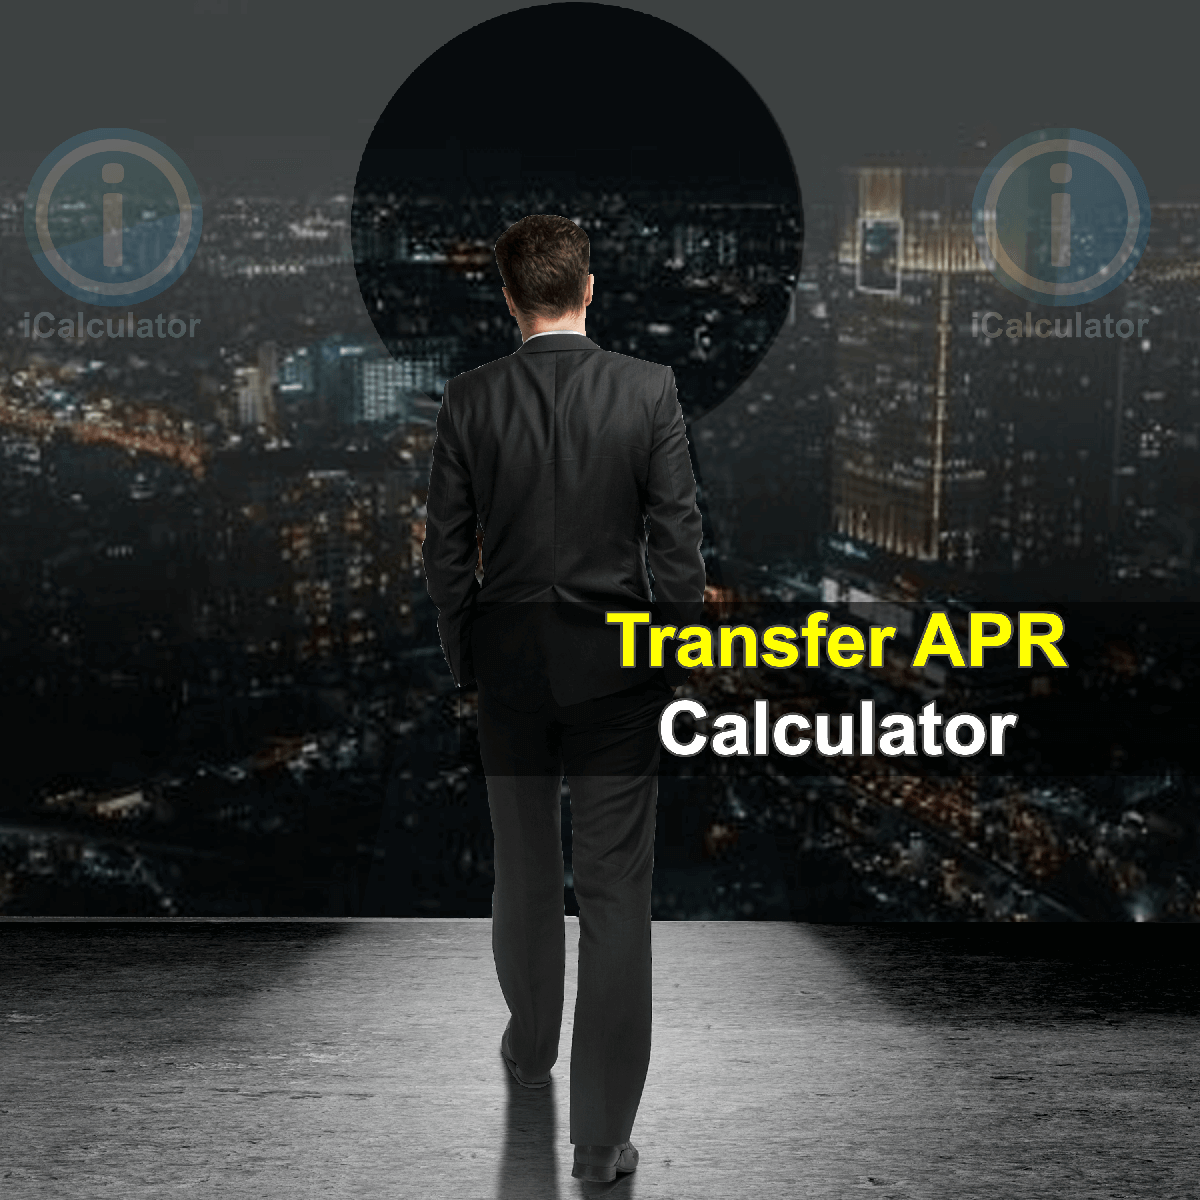 Creditline Transfer APR Calculator. This image provides details of how to calculate amortization using a calculator, pencil and notepad. By using the APR formula, the Creditline Transfer APR Calculator provides a true calculation of the cost of short term loans and overdrafts offered by the banks to their customers and the associated APR of the borrowing